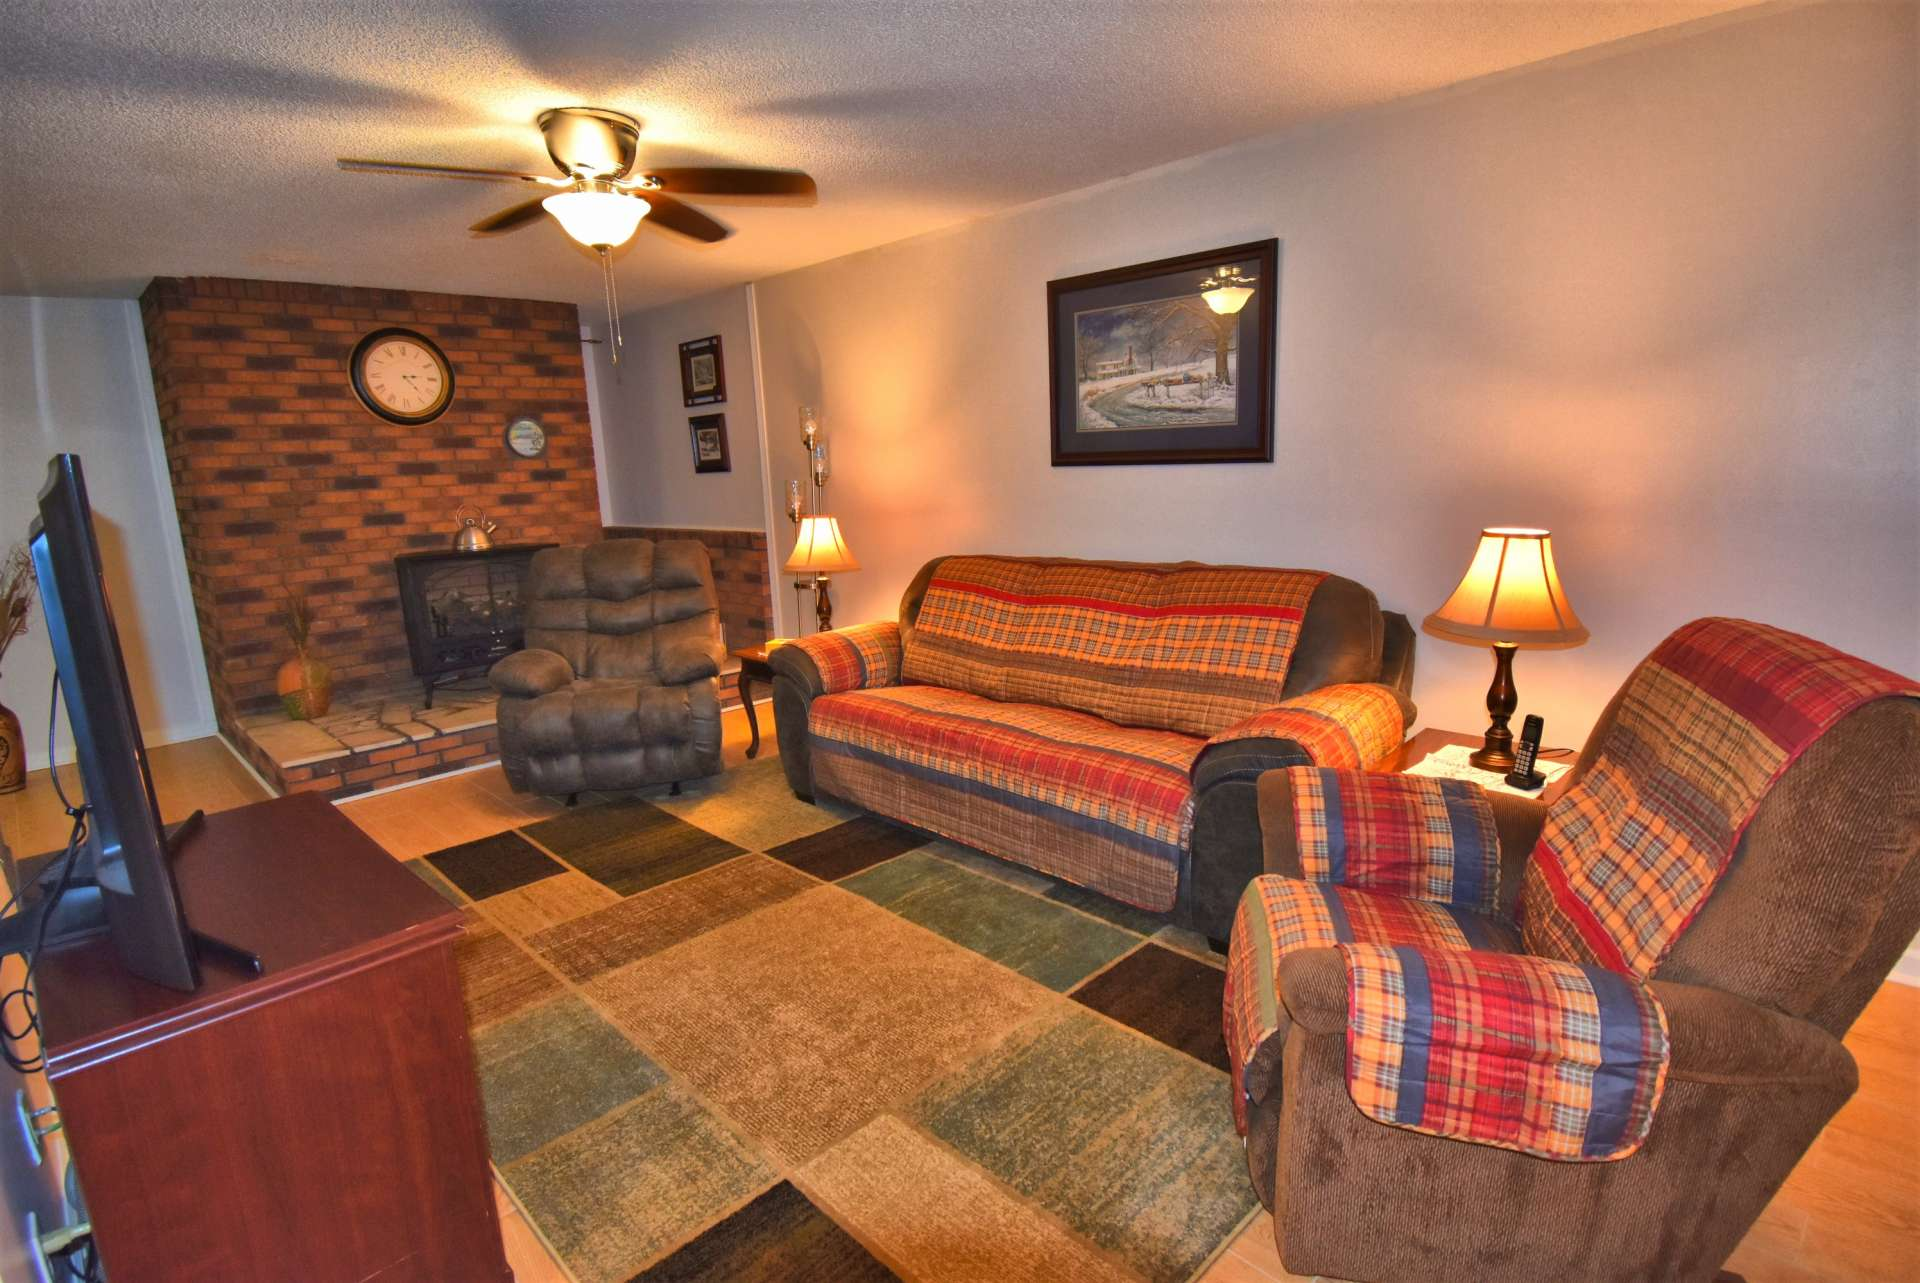 The lower level living area features new flooring and a gas log stove with the option of having a wood burning stove.